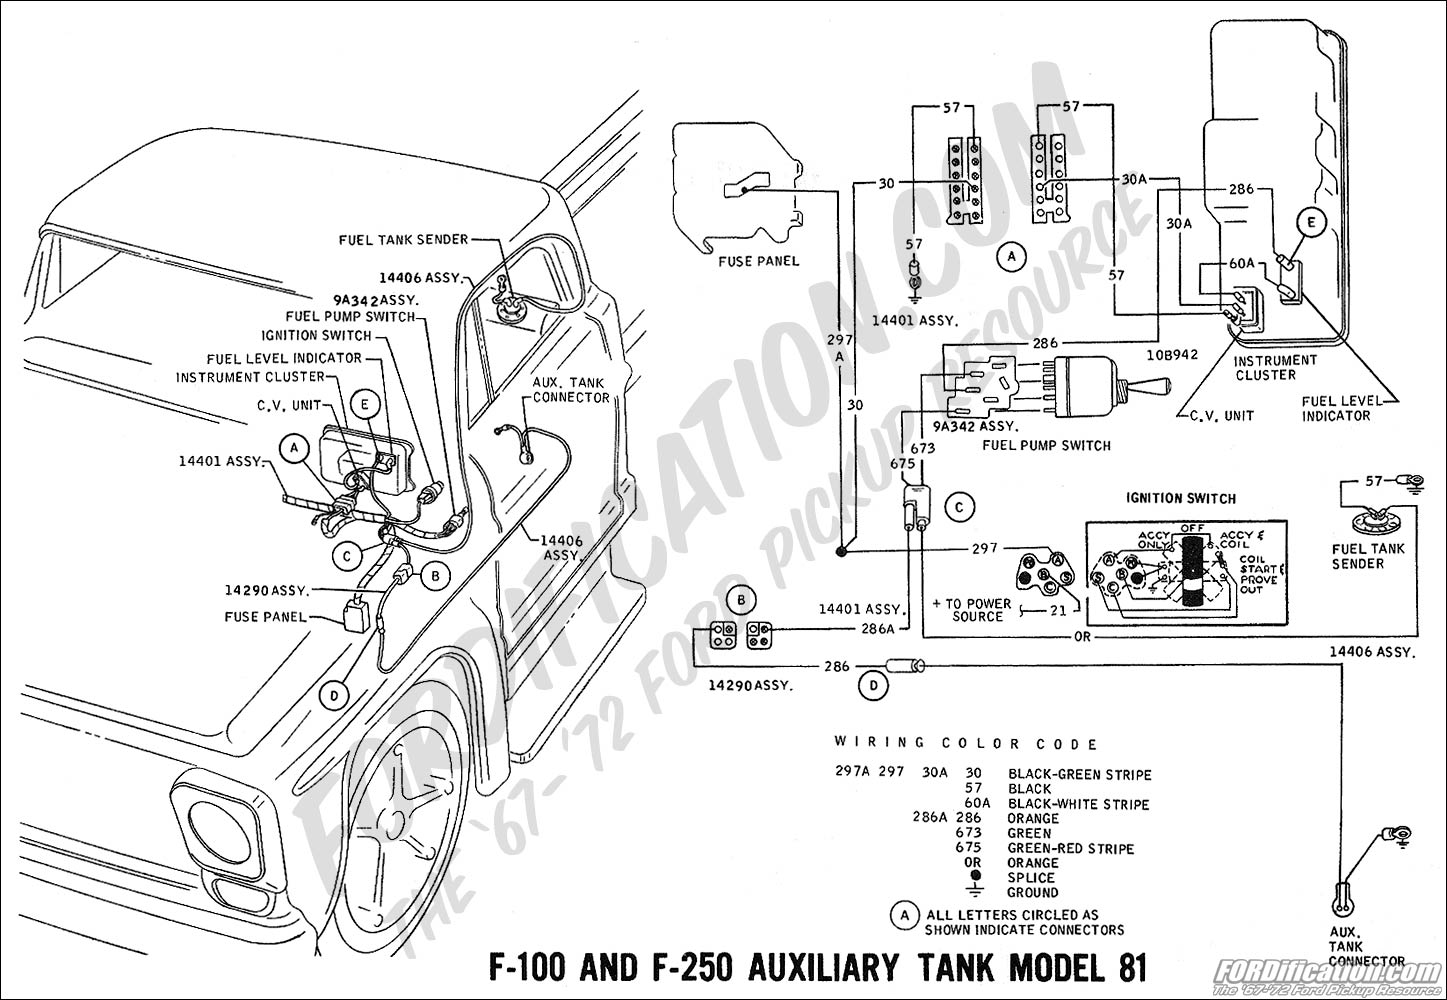 wiring_69aux fuel 69 f100 wiring diagram 1973 ford f100 wiring diagram \u2022 wiring Ford E-350 Fuse Box Diagram at bakdesigns.co